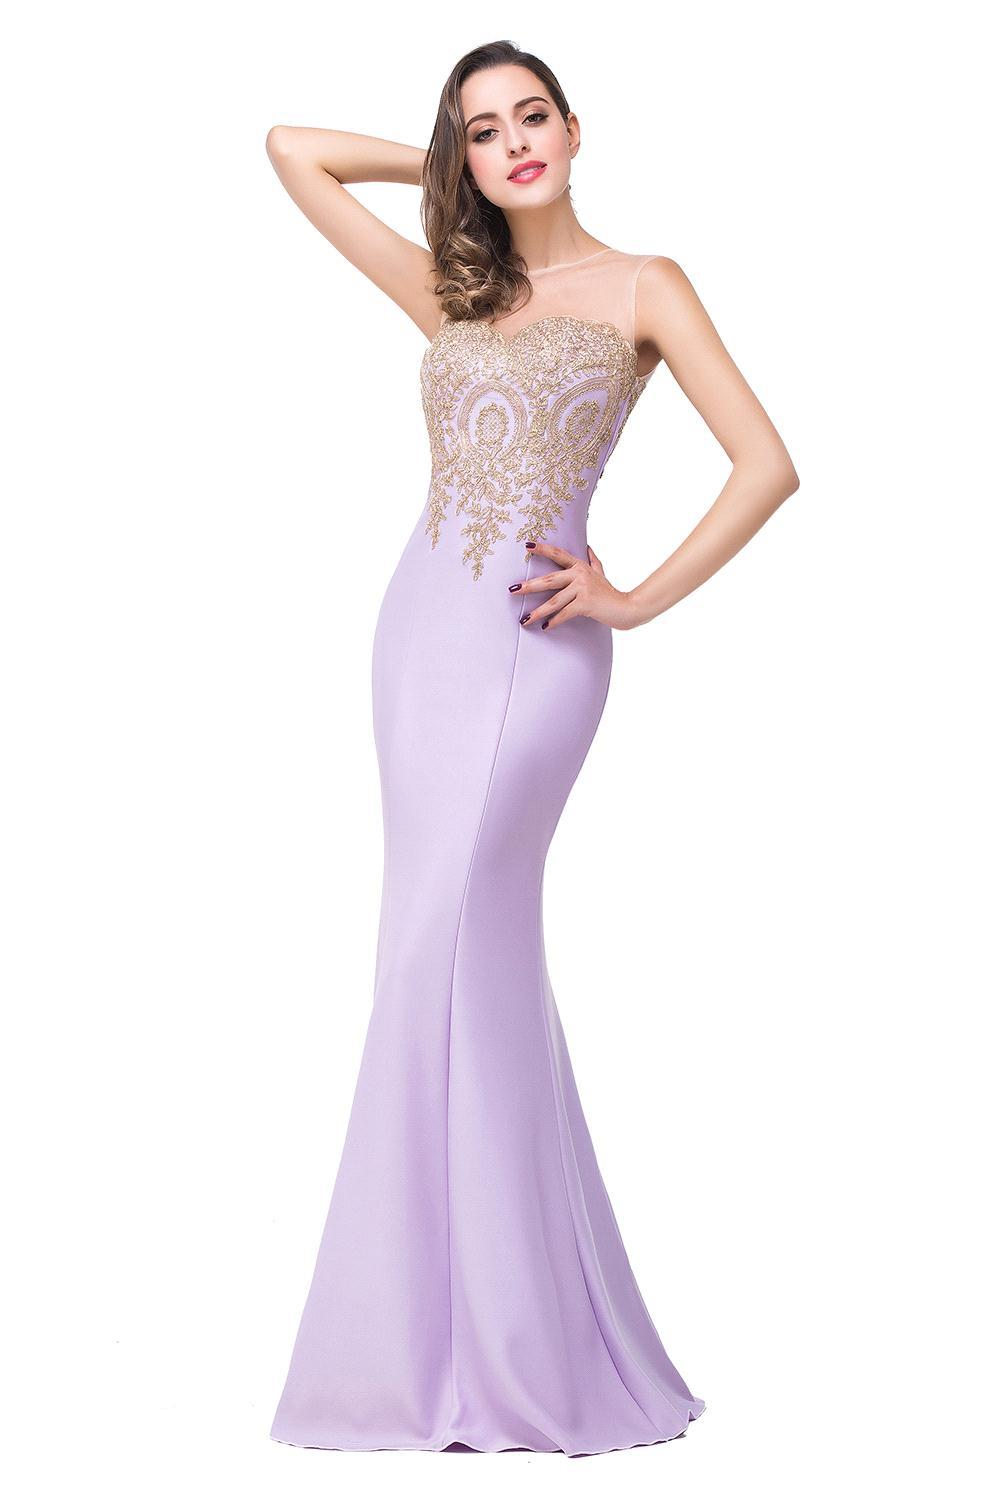 Compare prices on lavender wedding dresses online for Cheap lavender wedding dresses